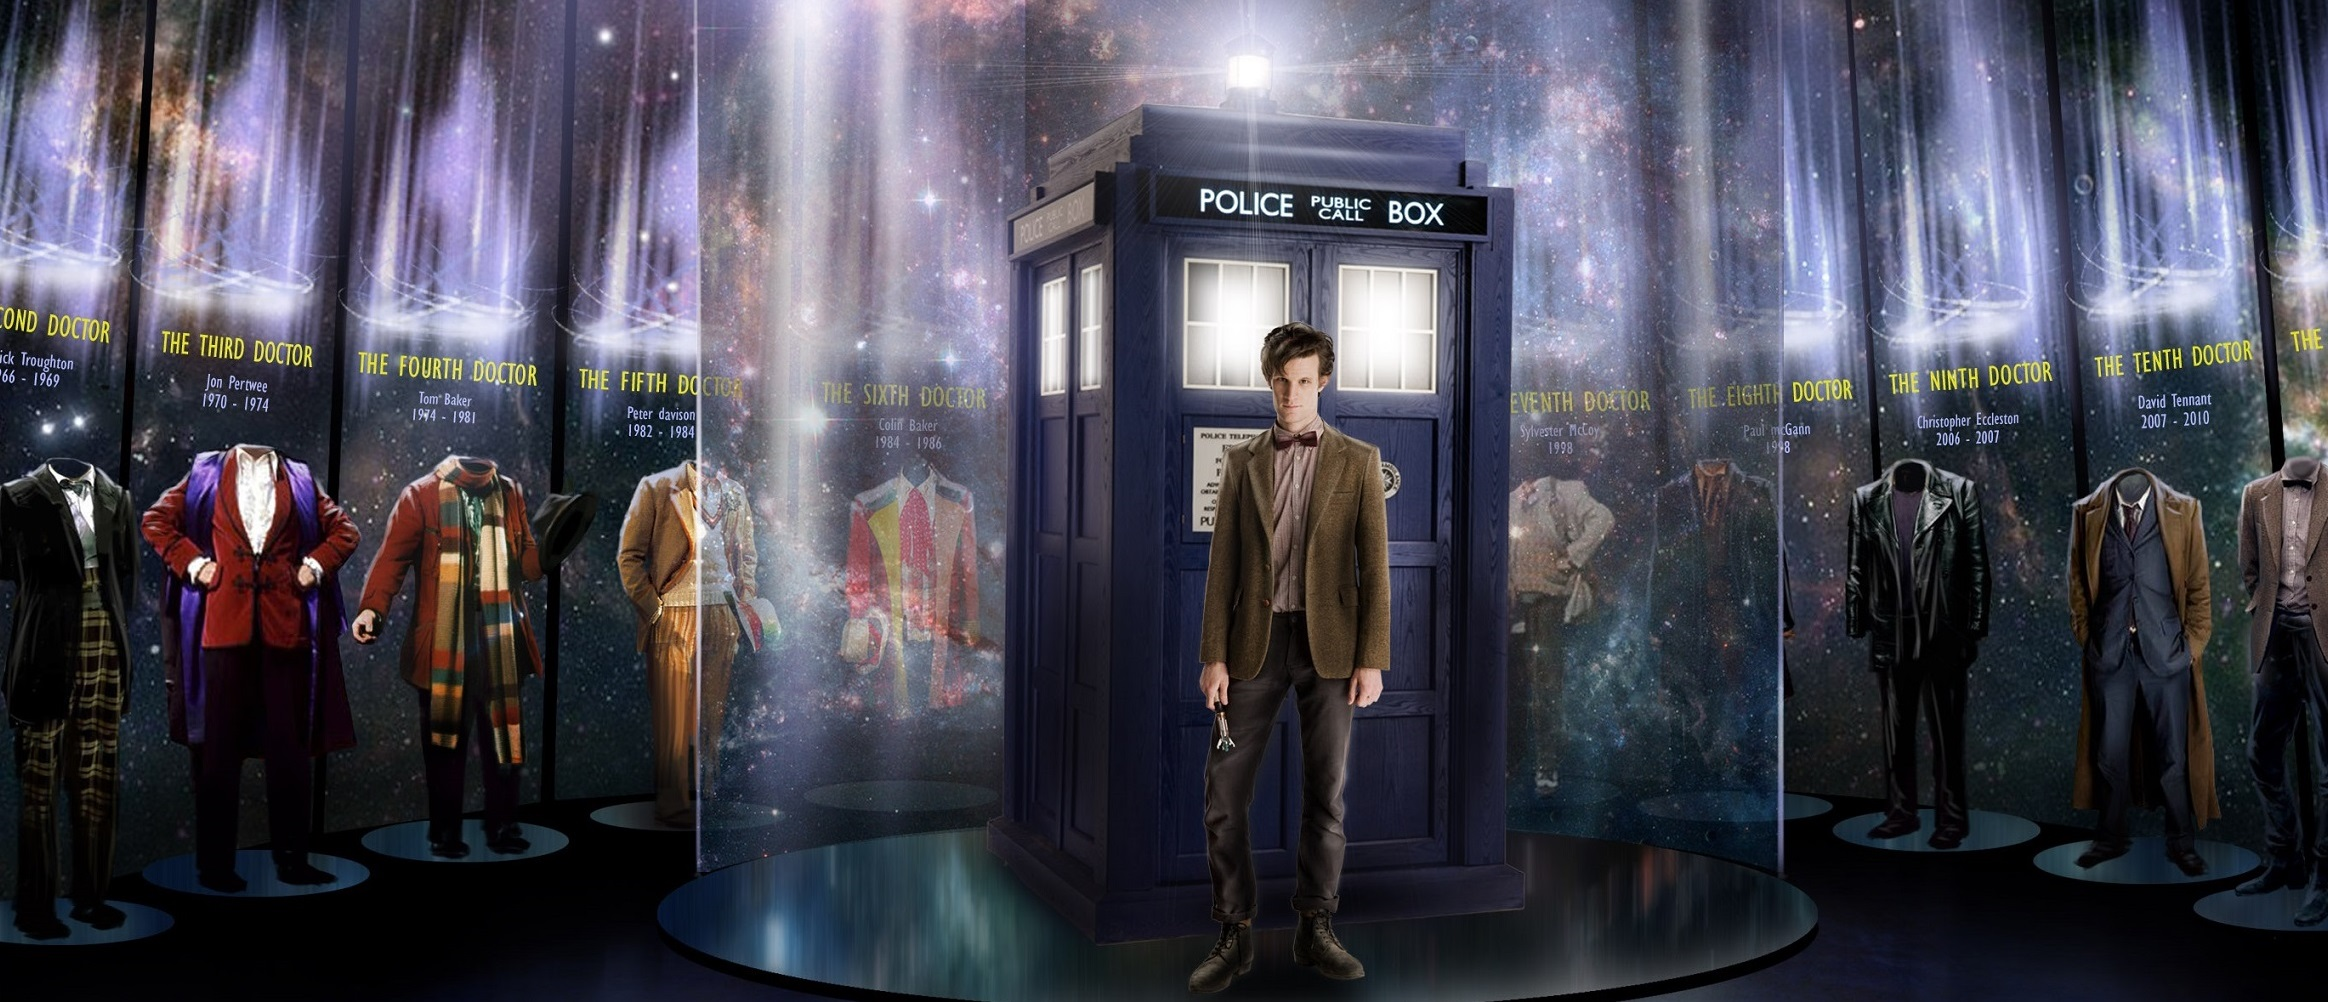 Free Download Tumblr Static Doctor Who Wallpaper 274jpg